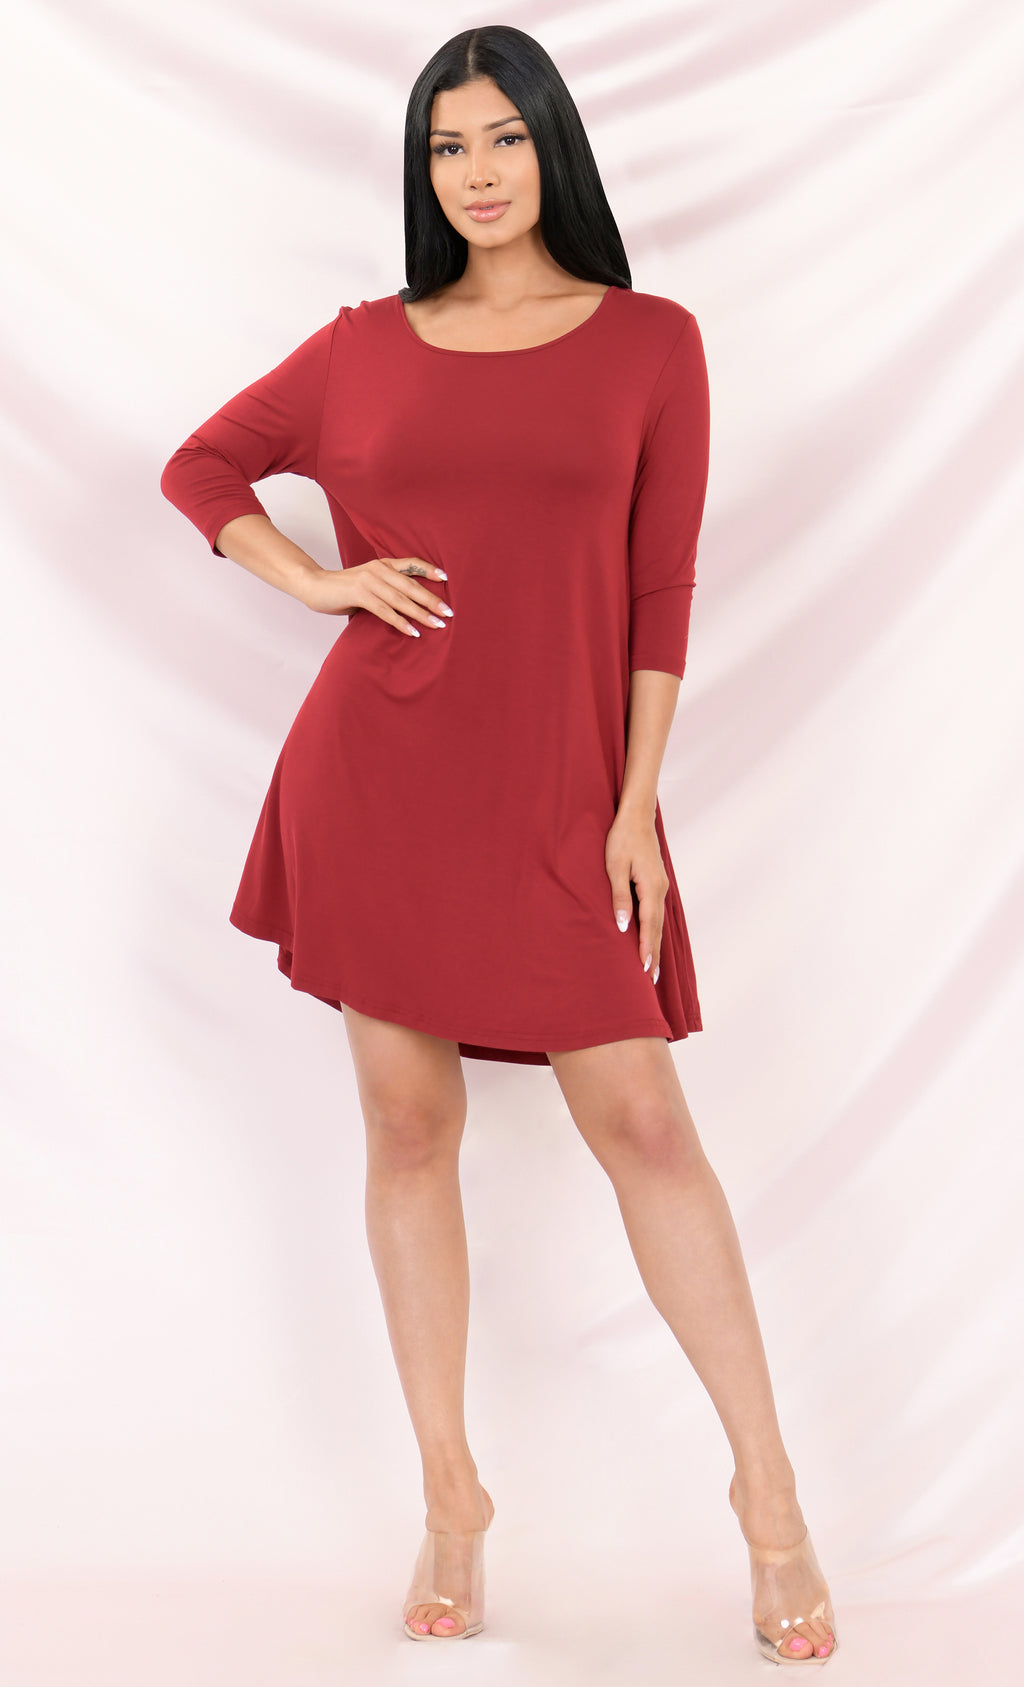 Making It Easy Burgundy Red 3/4 Long Sleeve Scoop Neck Piko Hidden Pockets Bamboo Oversized Tunic Tee Shirt Mini Dress